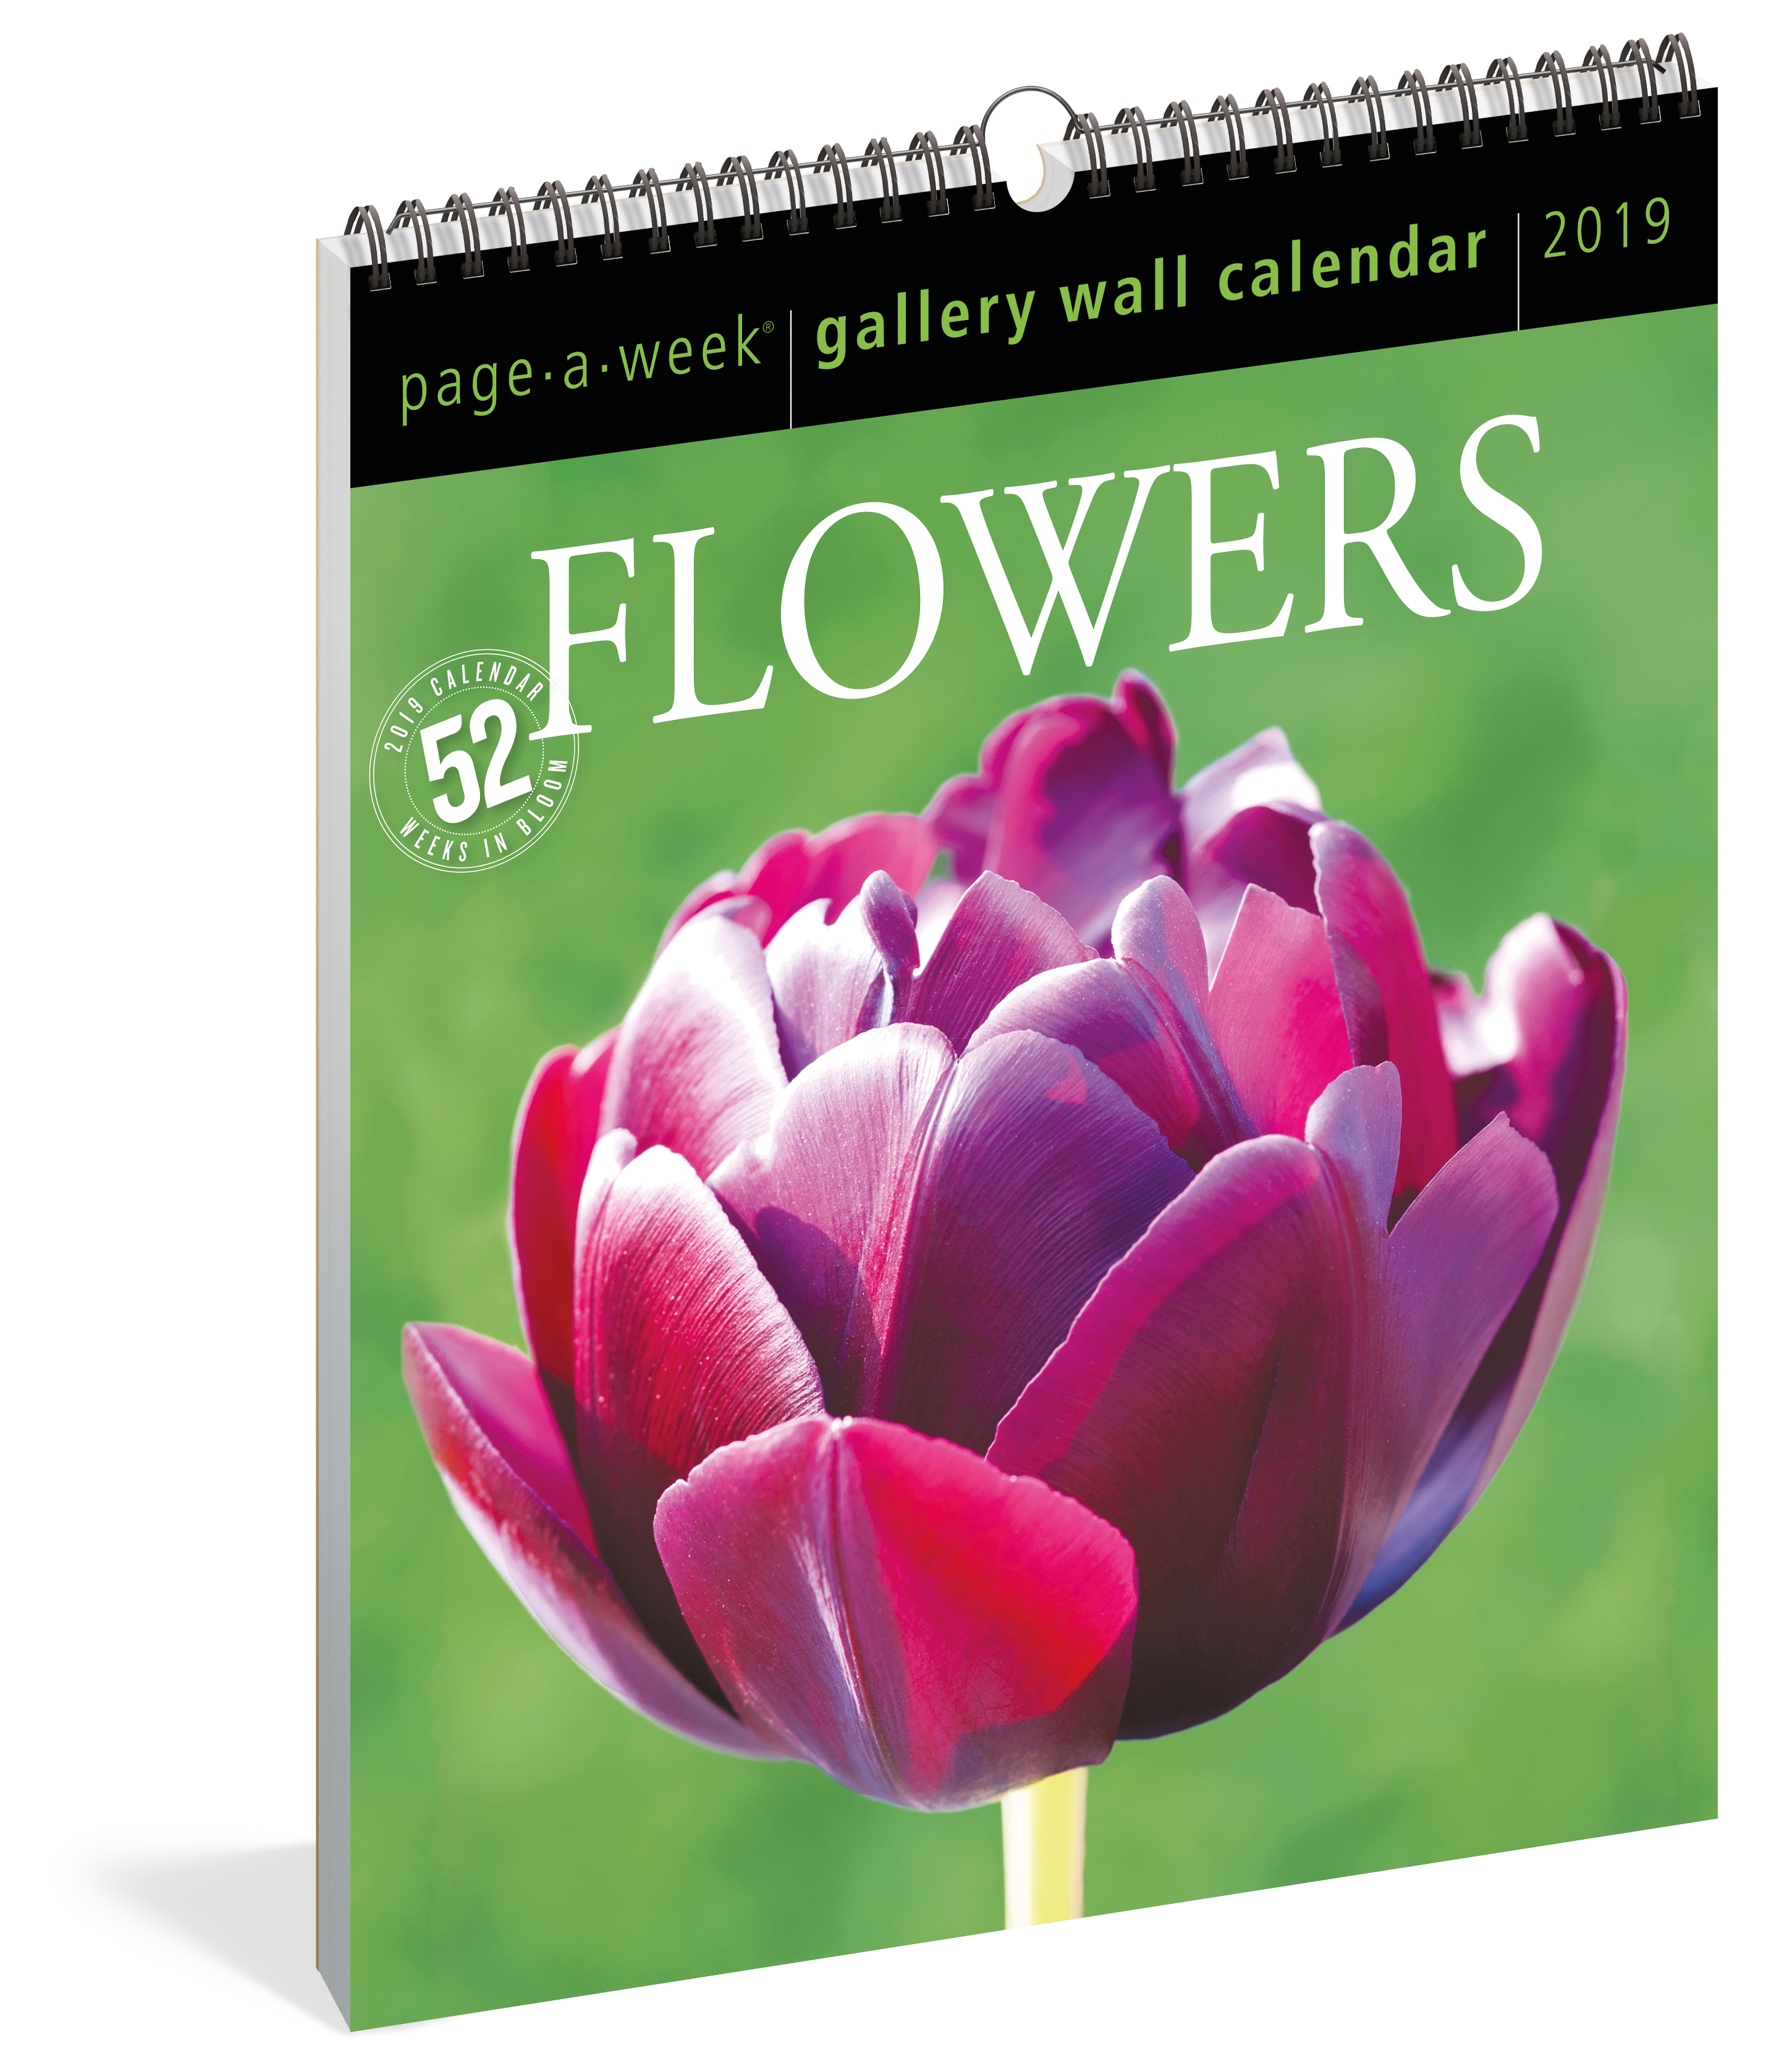 Flowers Page A Week Gallery Wall Calendar 2019